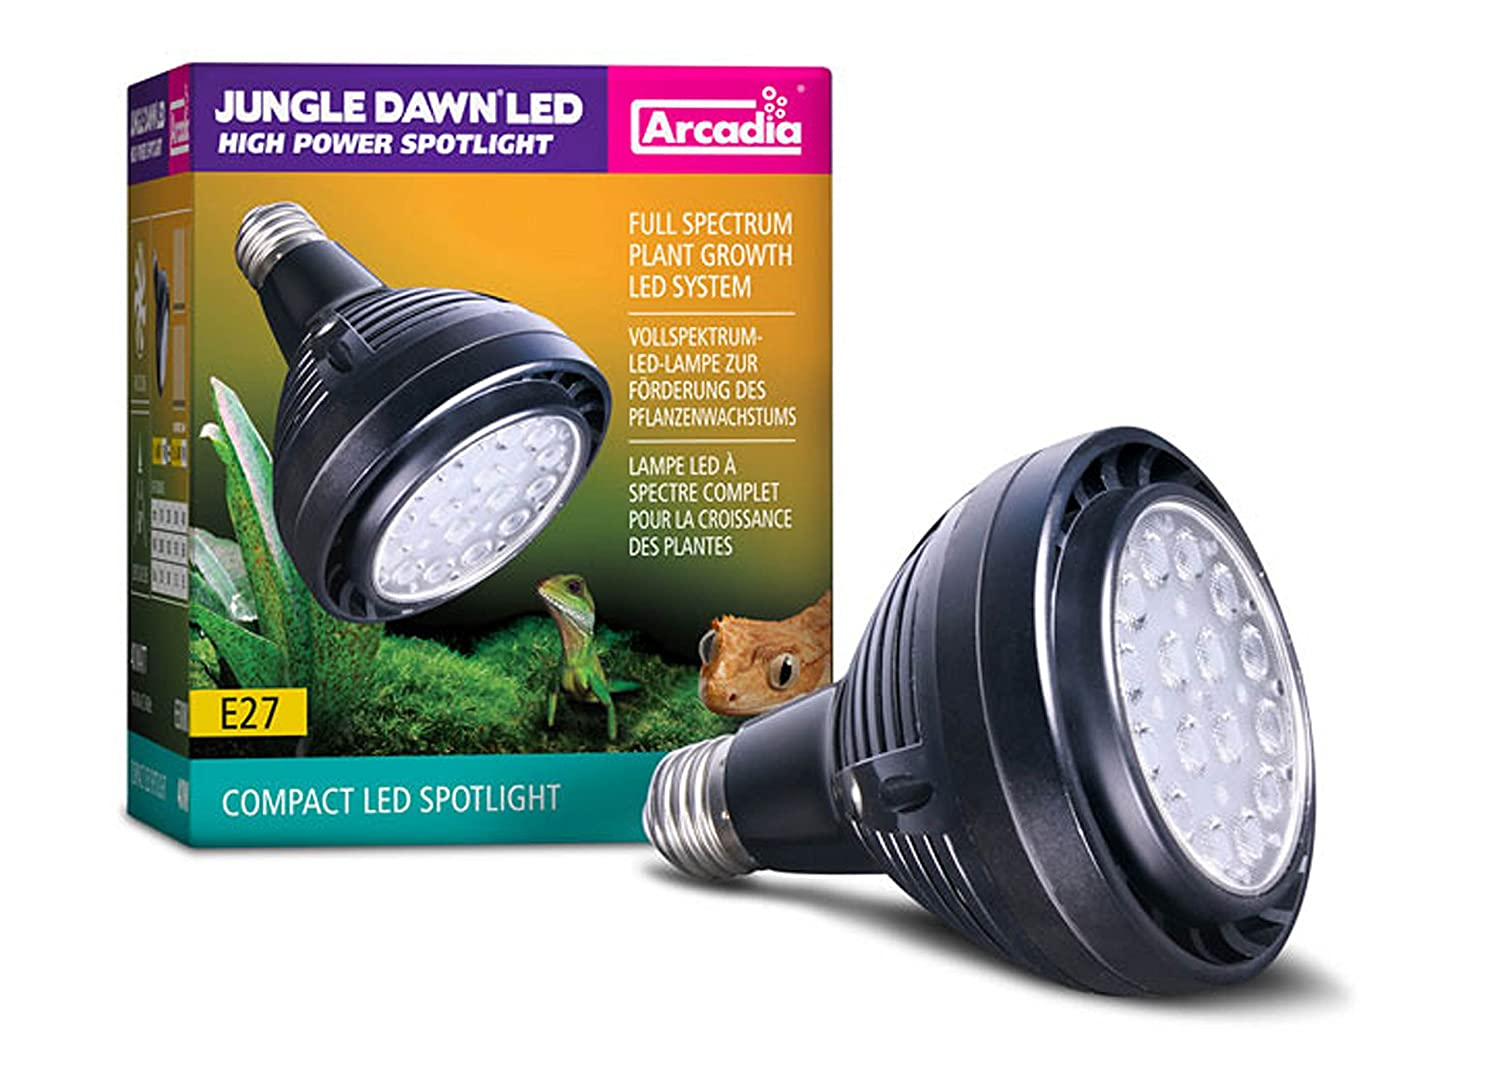 Arcadia AJDS40 Jungle Dawn LED